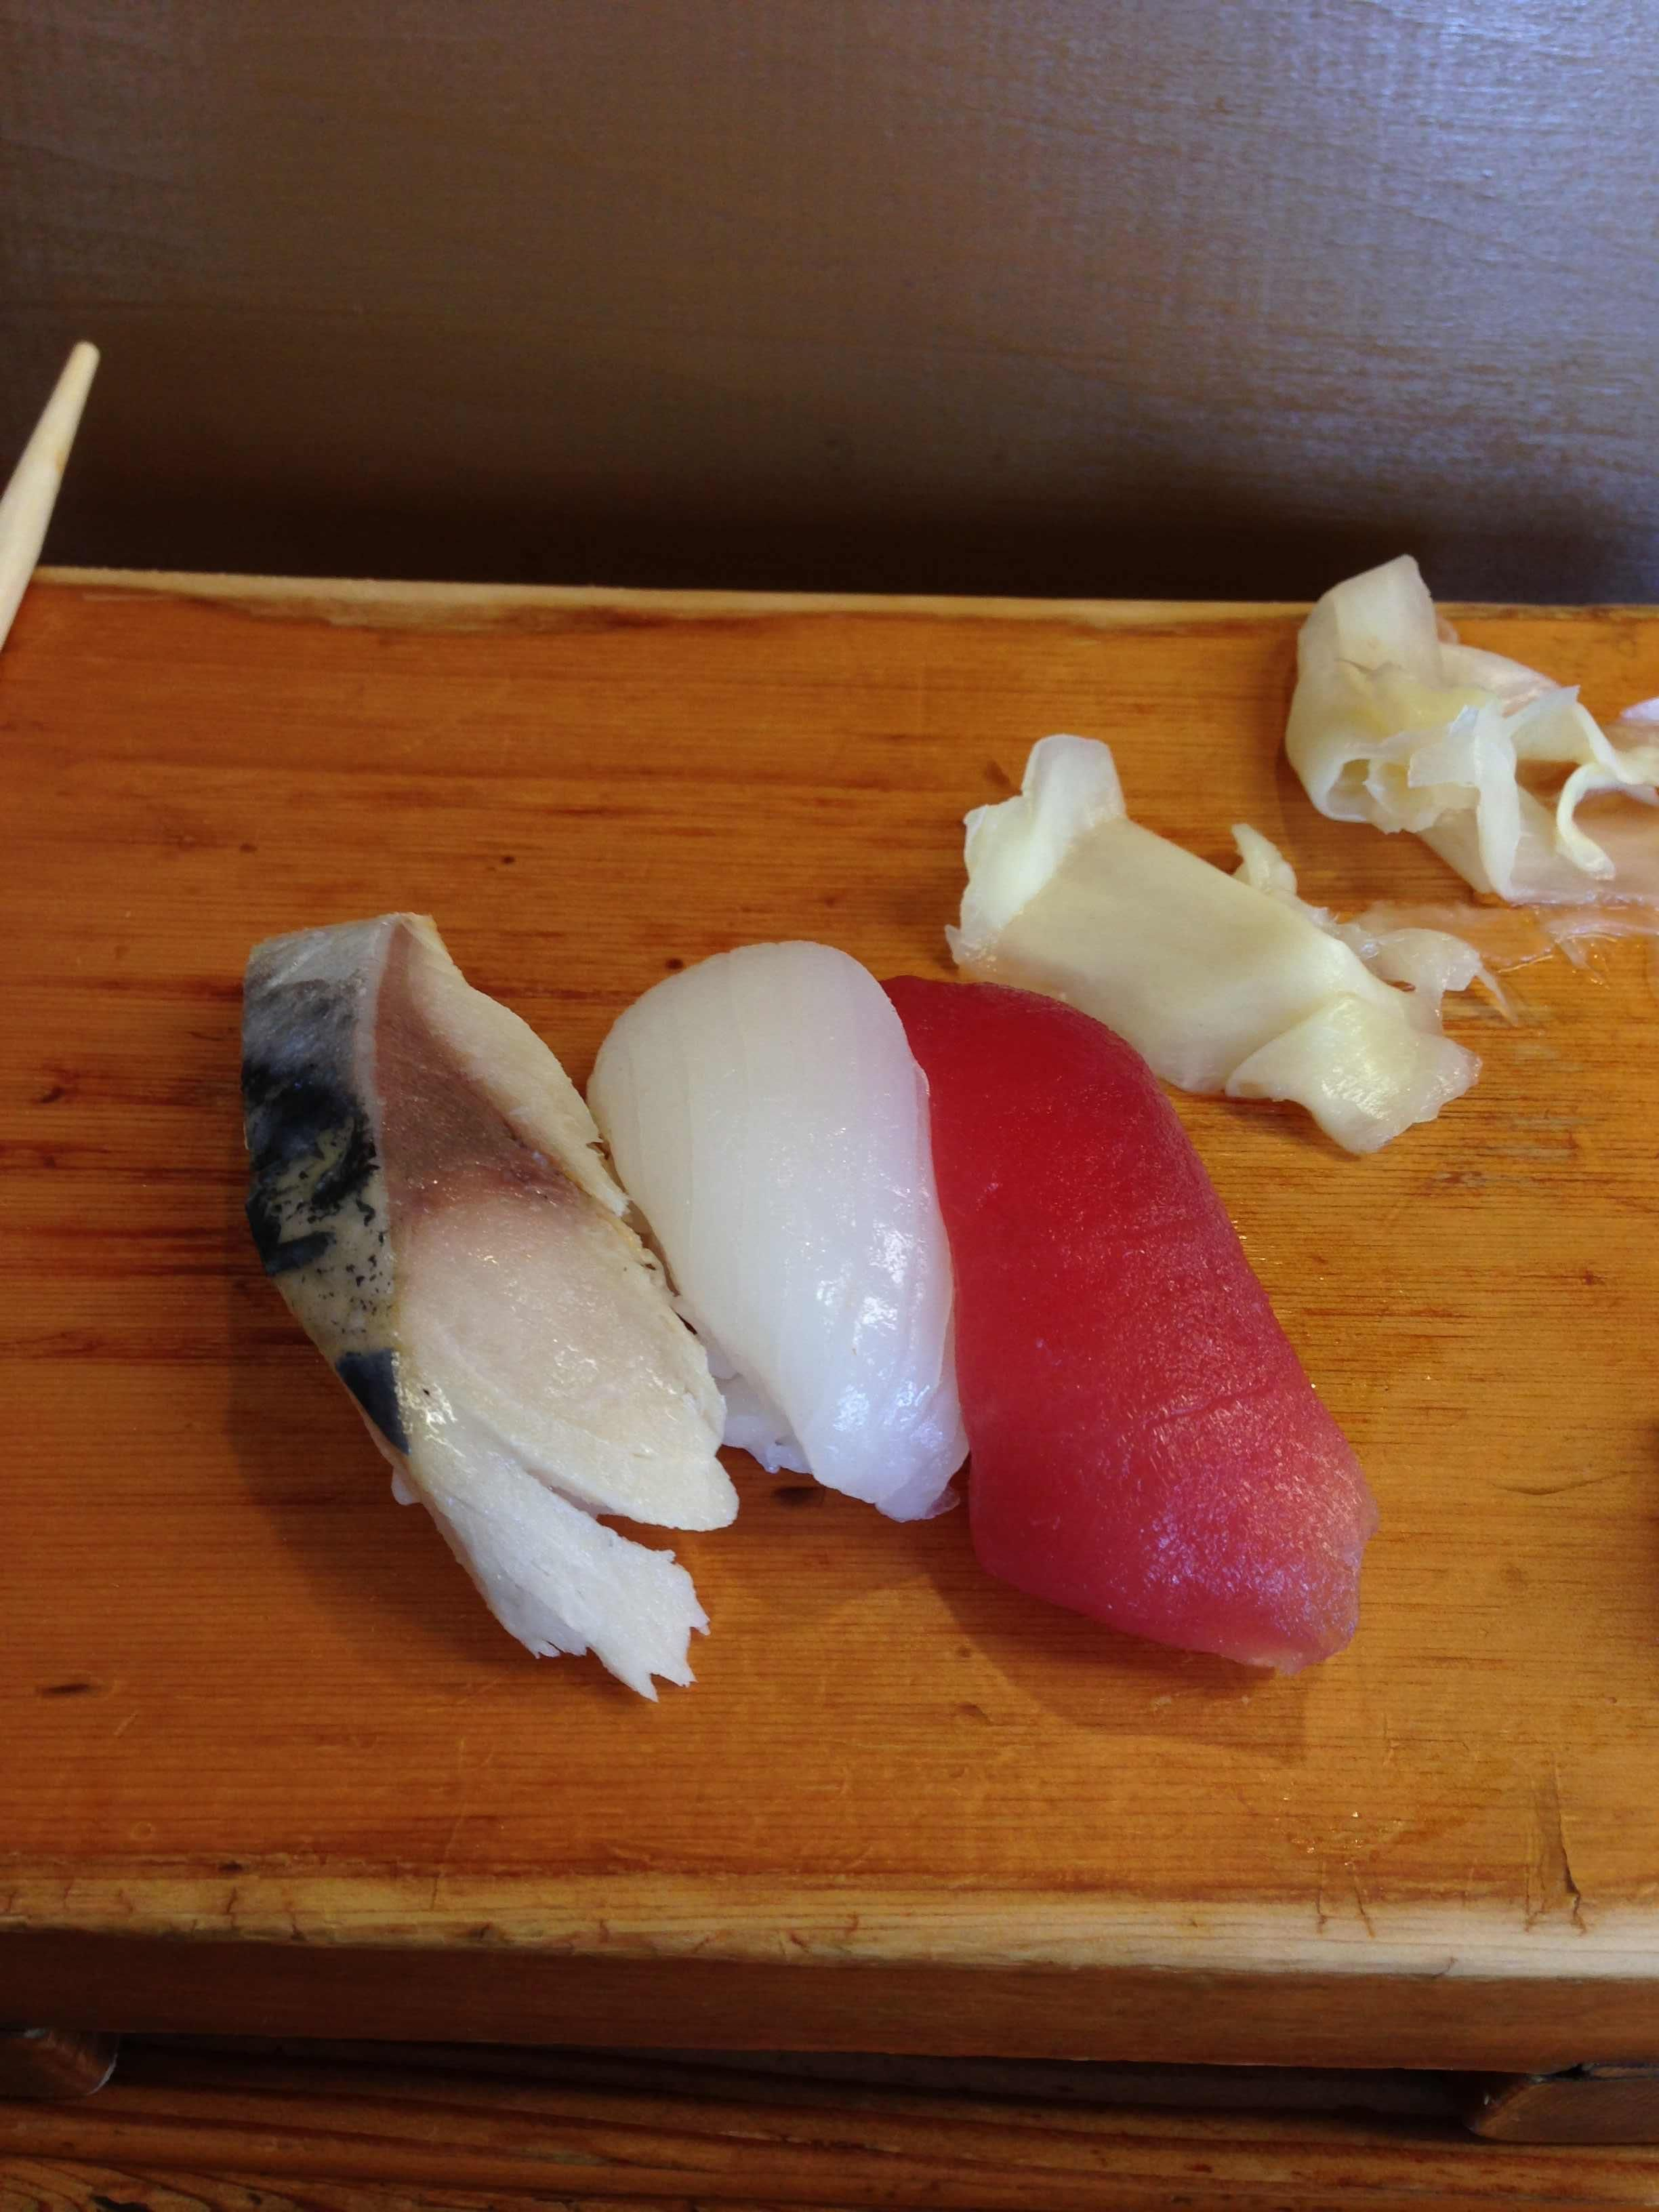 Visited one of my favorite sushi bars in Torrance, CA. Mackerel, squid, and tuna. - Imgur